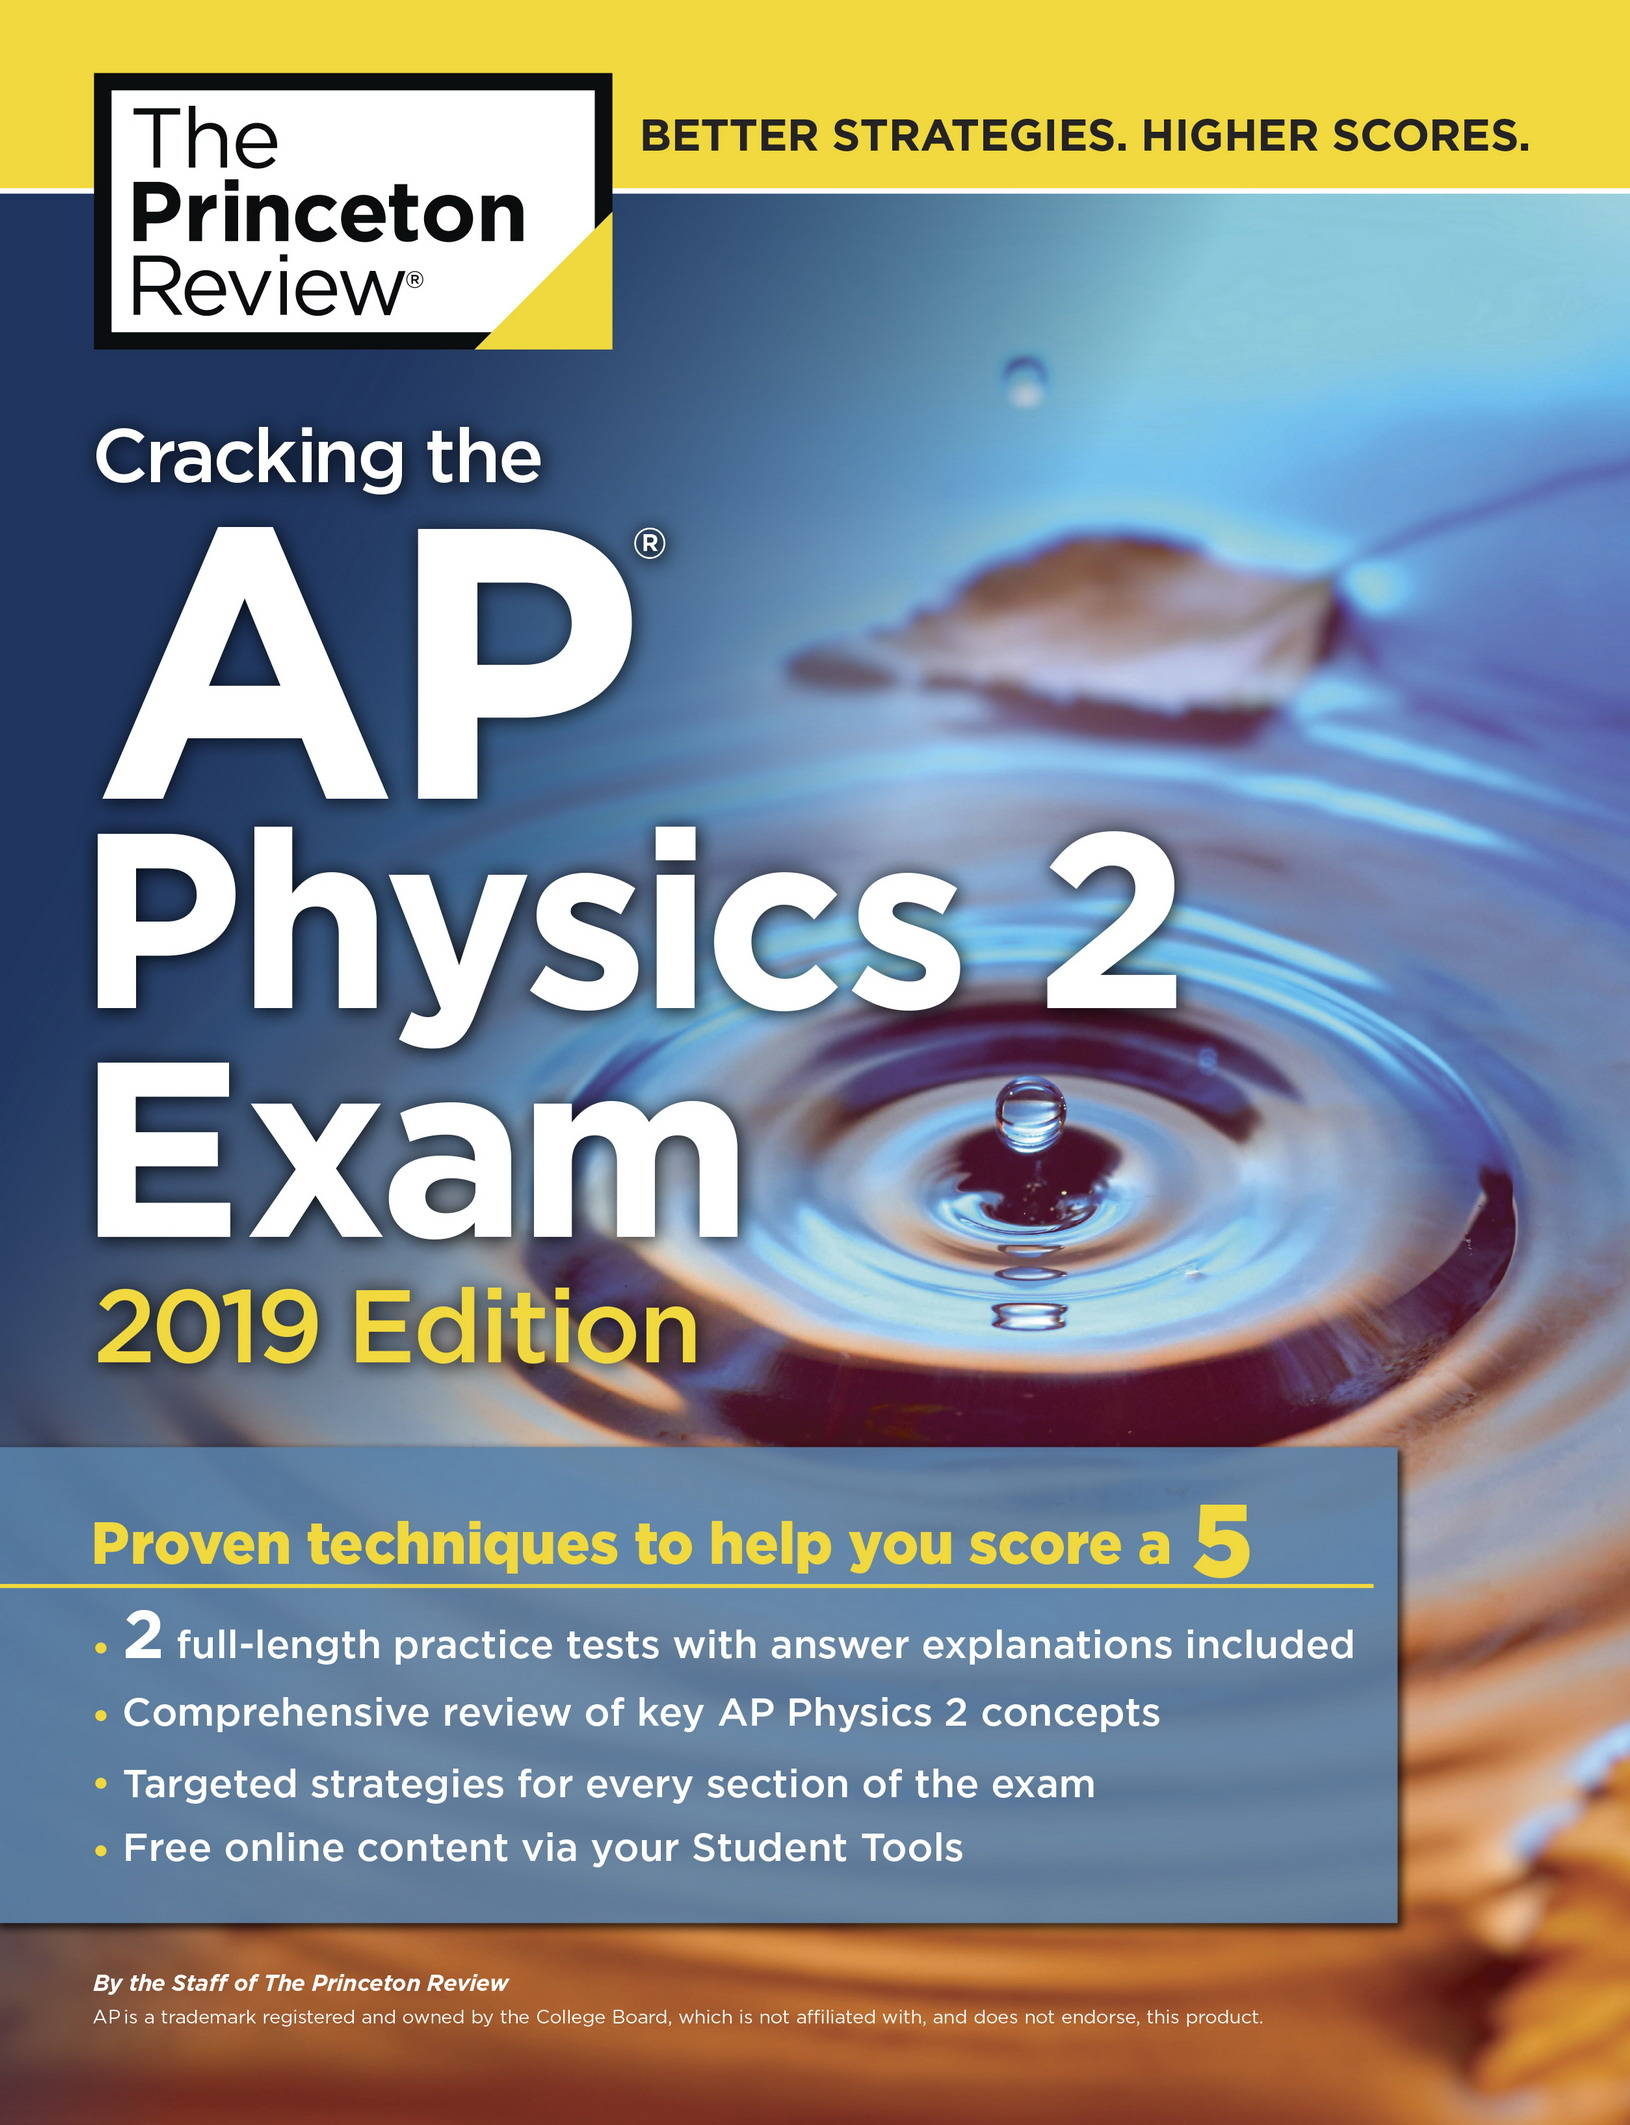 Cracking the AP Physics 2 Exam, 2019 Edition: Practice Tests